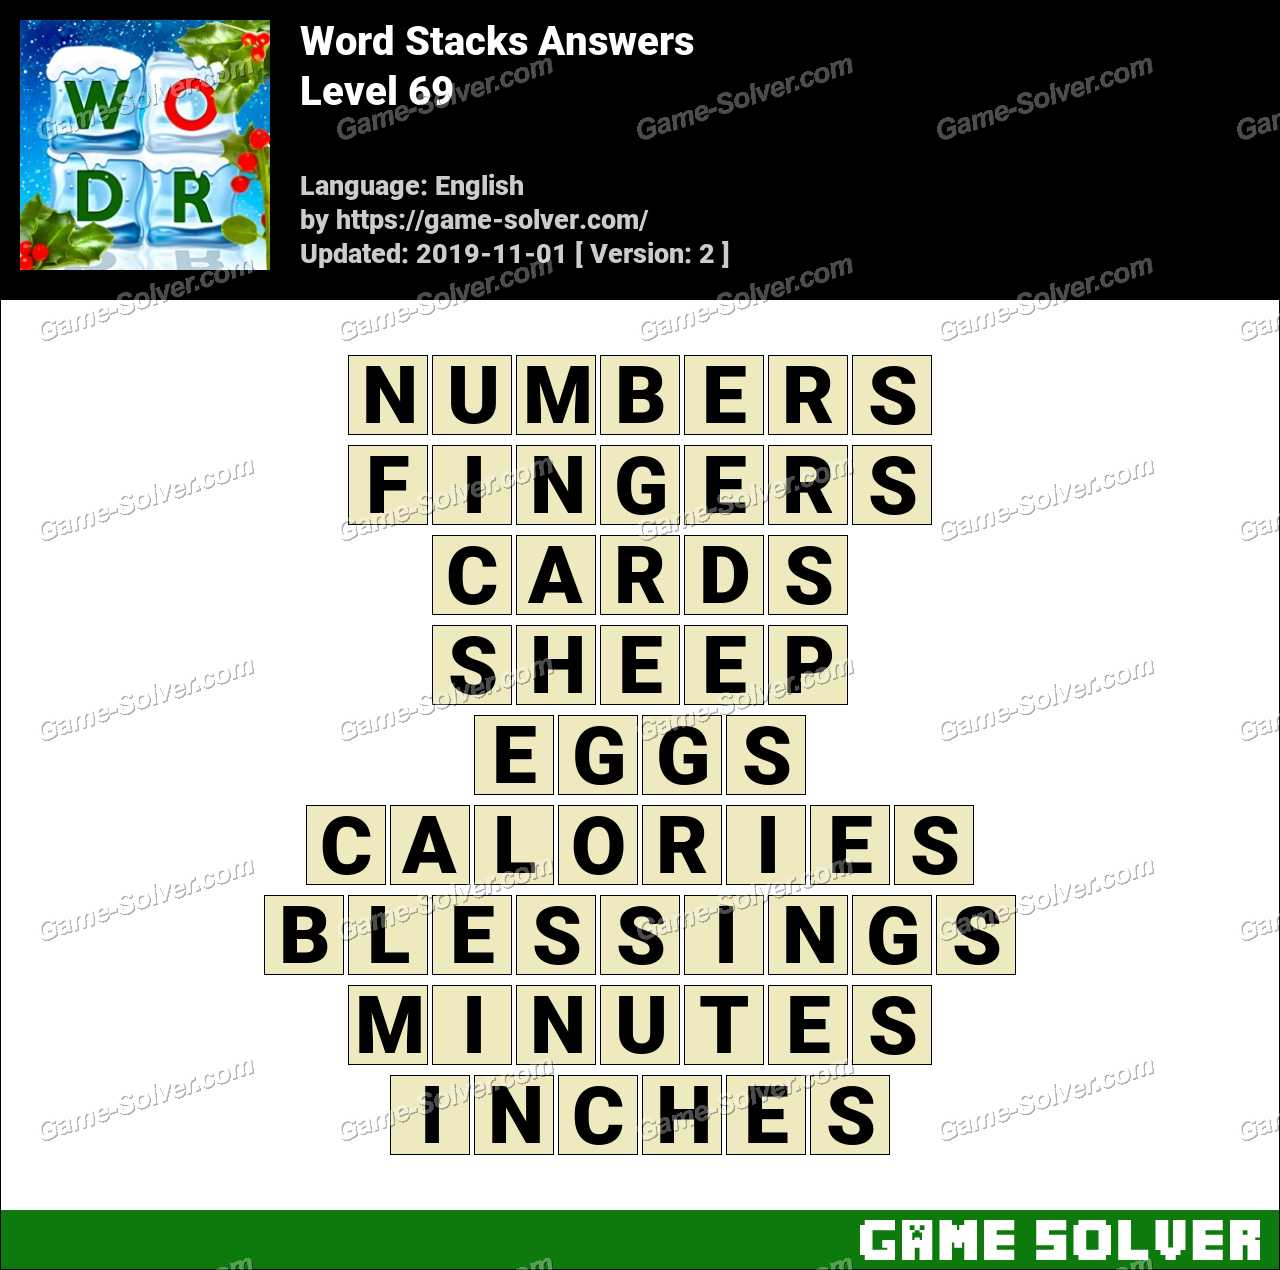 Word Stacks Level 69 Answers